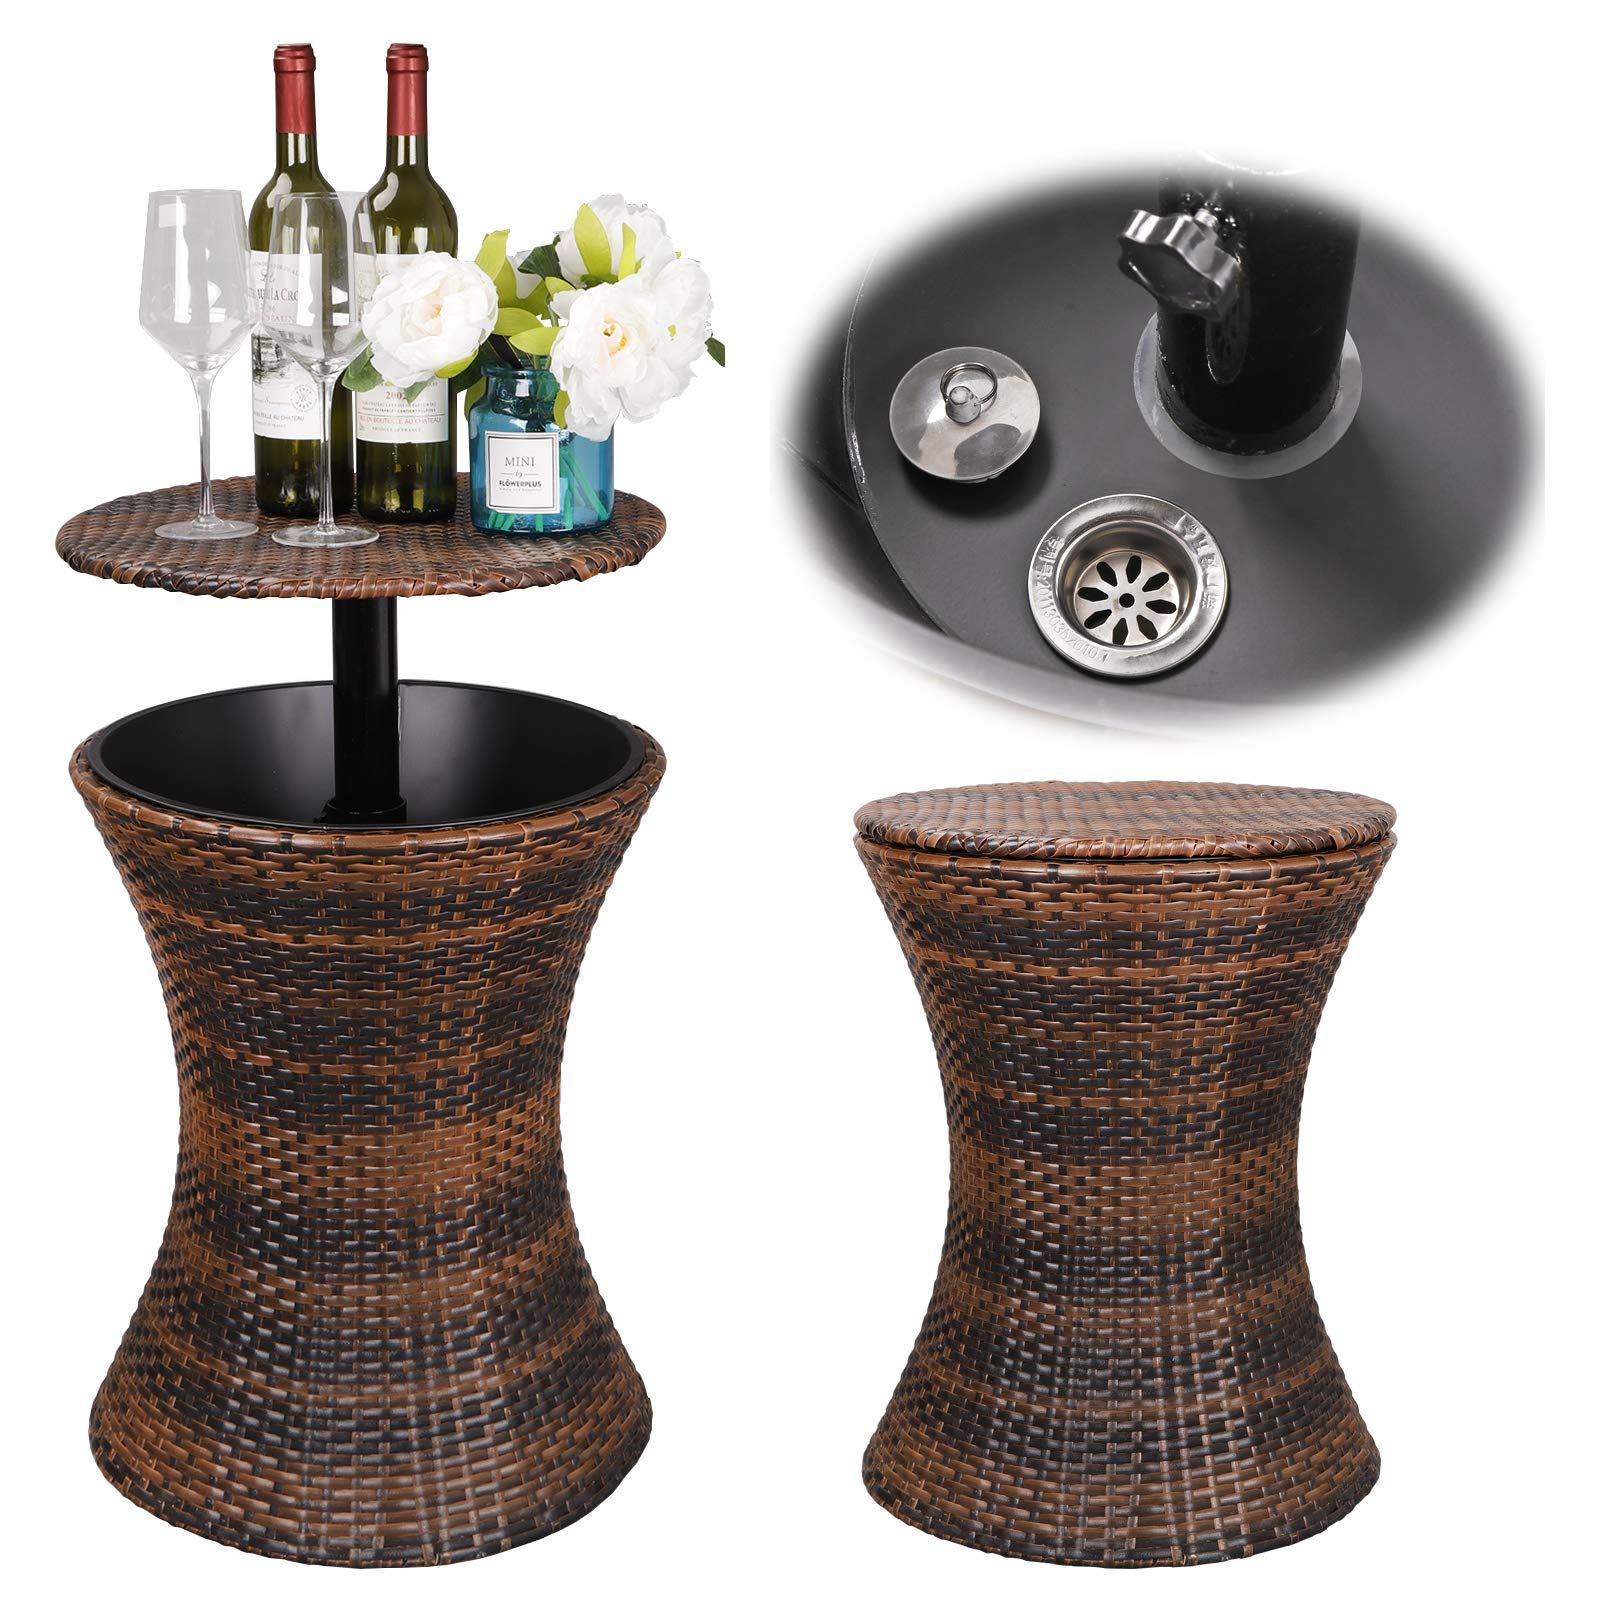 ZENY 5.5 Gallon Cool Bar Rattan Style Patio Pool Cooler Table W/Height Adjustable Top Outdoor Wicker Ice Bucket Cocktail Coffee Table for Party Deck Pool Use, Brown by ZENY (Image #2)